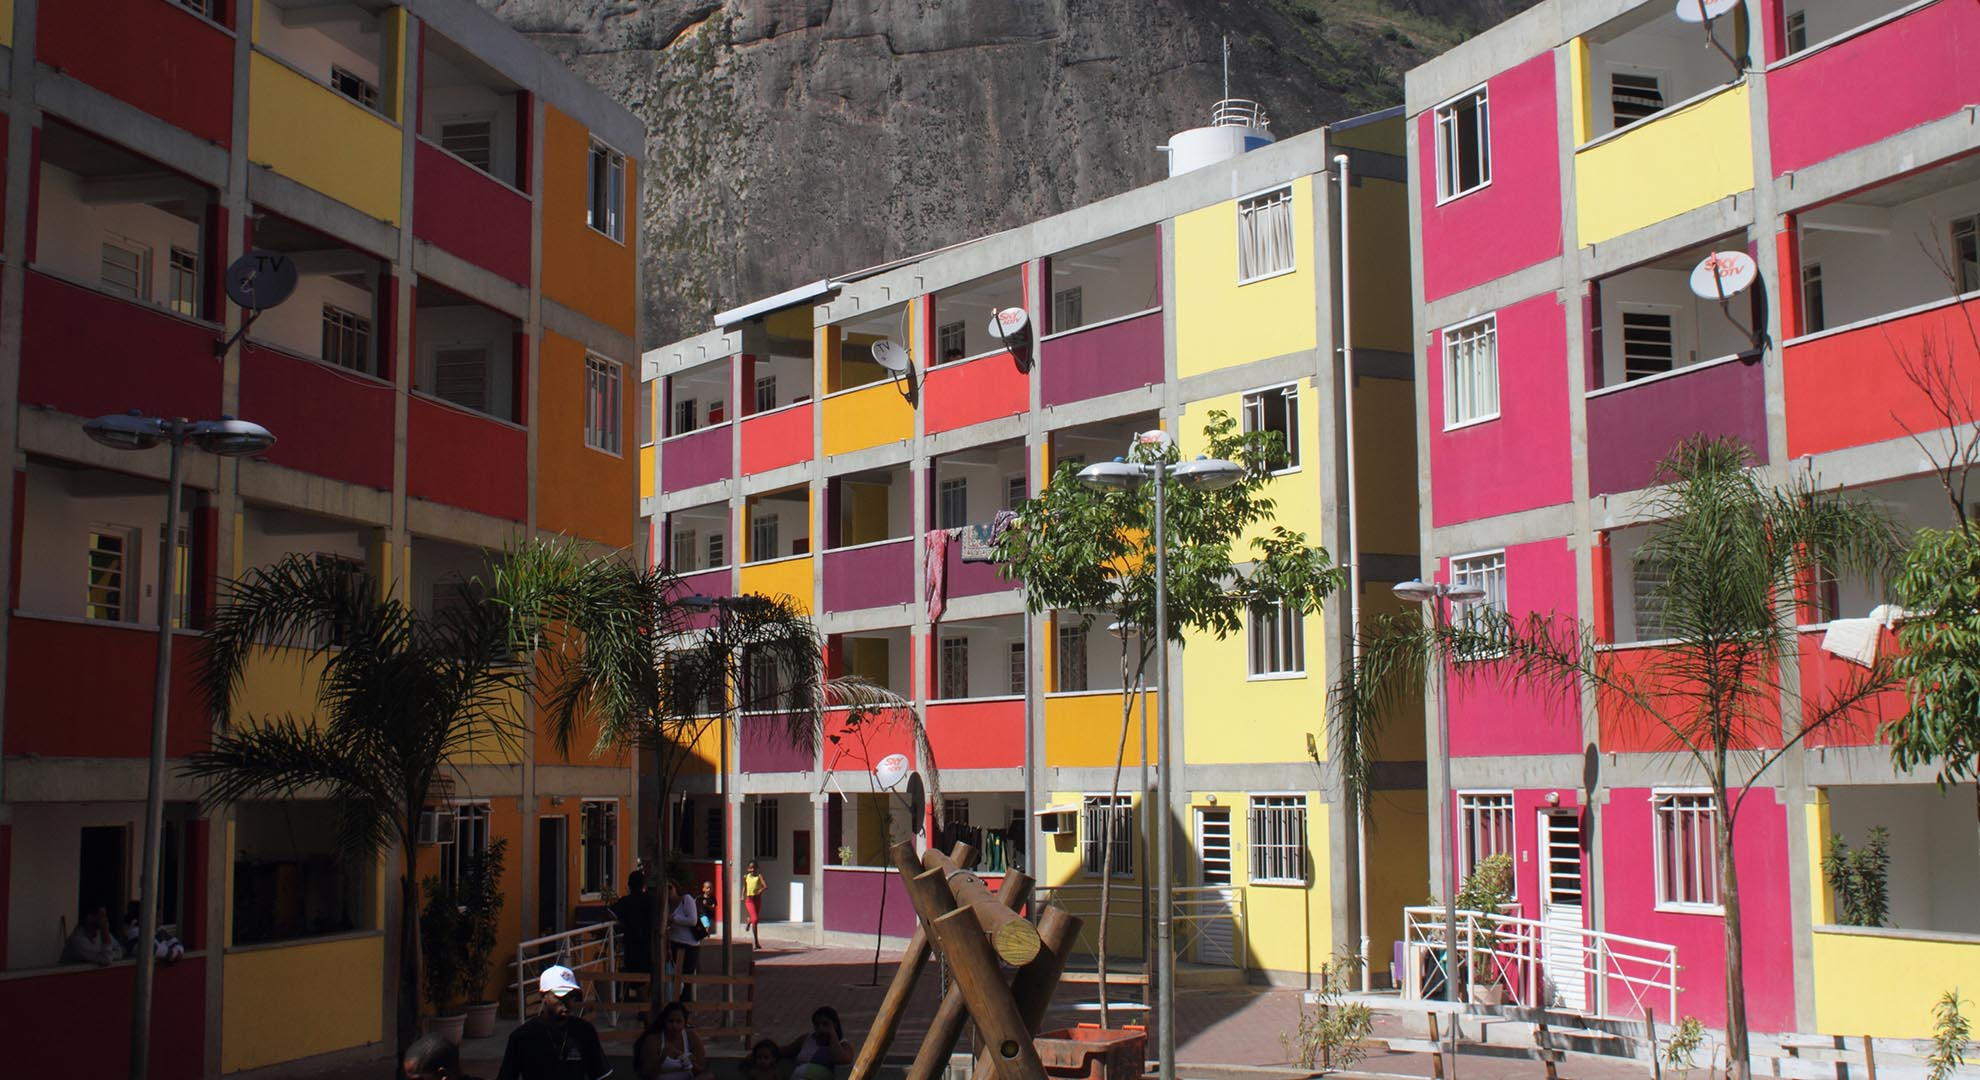 The use of color in urban planning